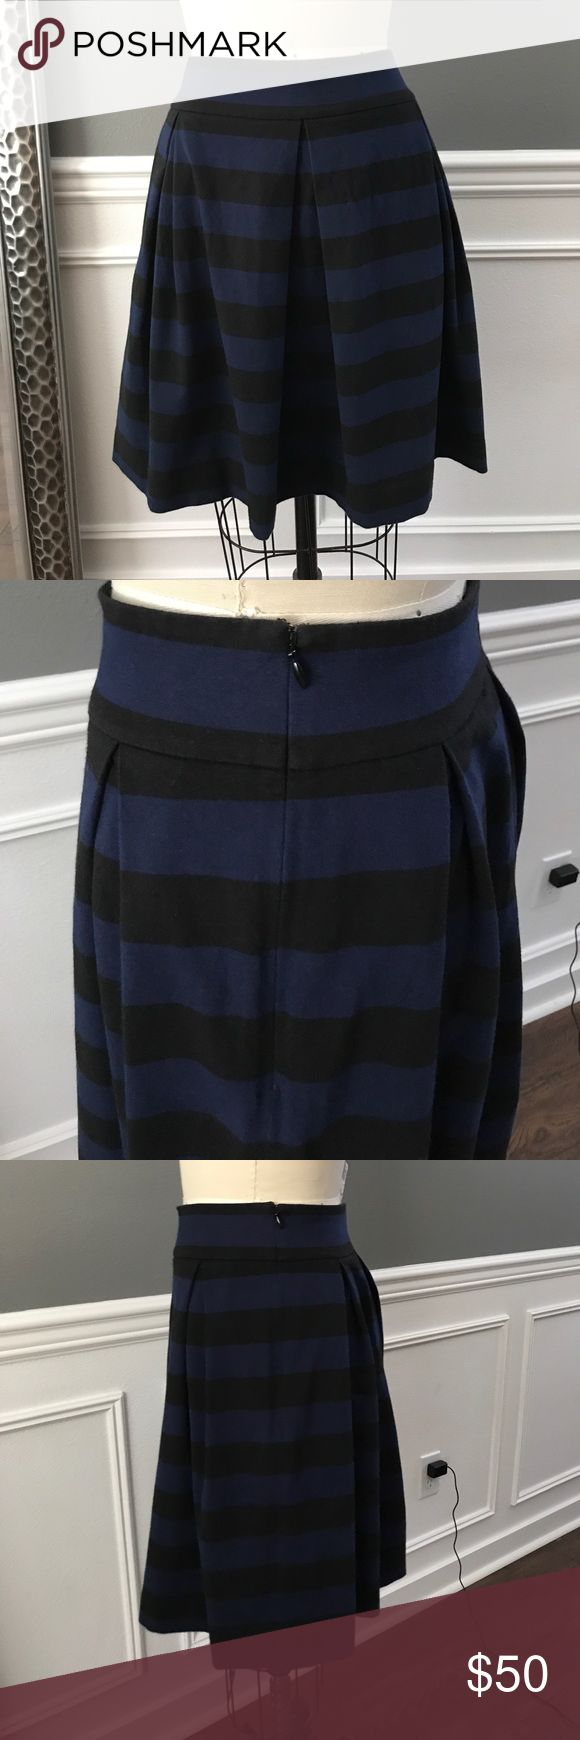 Kate Spade Pleated Skirt Jersey knit pleated skirt by Kate Spade from the skirt the rules line. Hidden side zip and clasp. Black and navy stripes. In excel condition just no longer fits me. kate spade Skirts